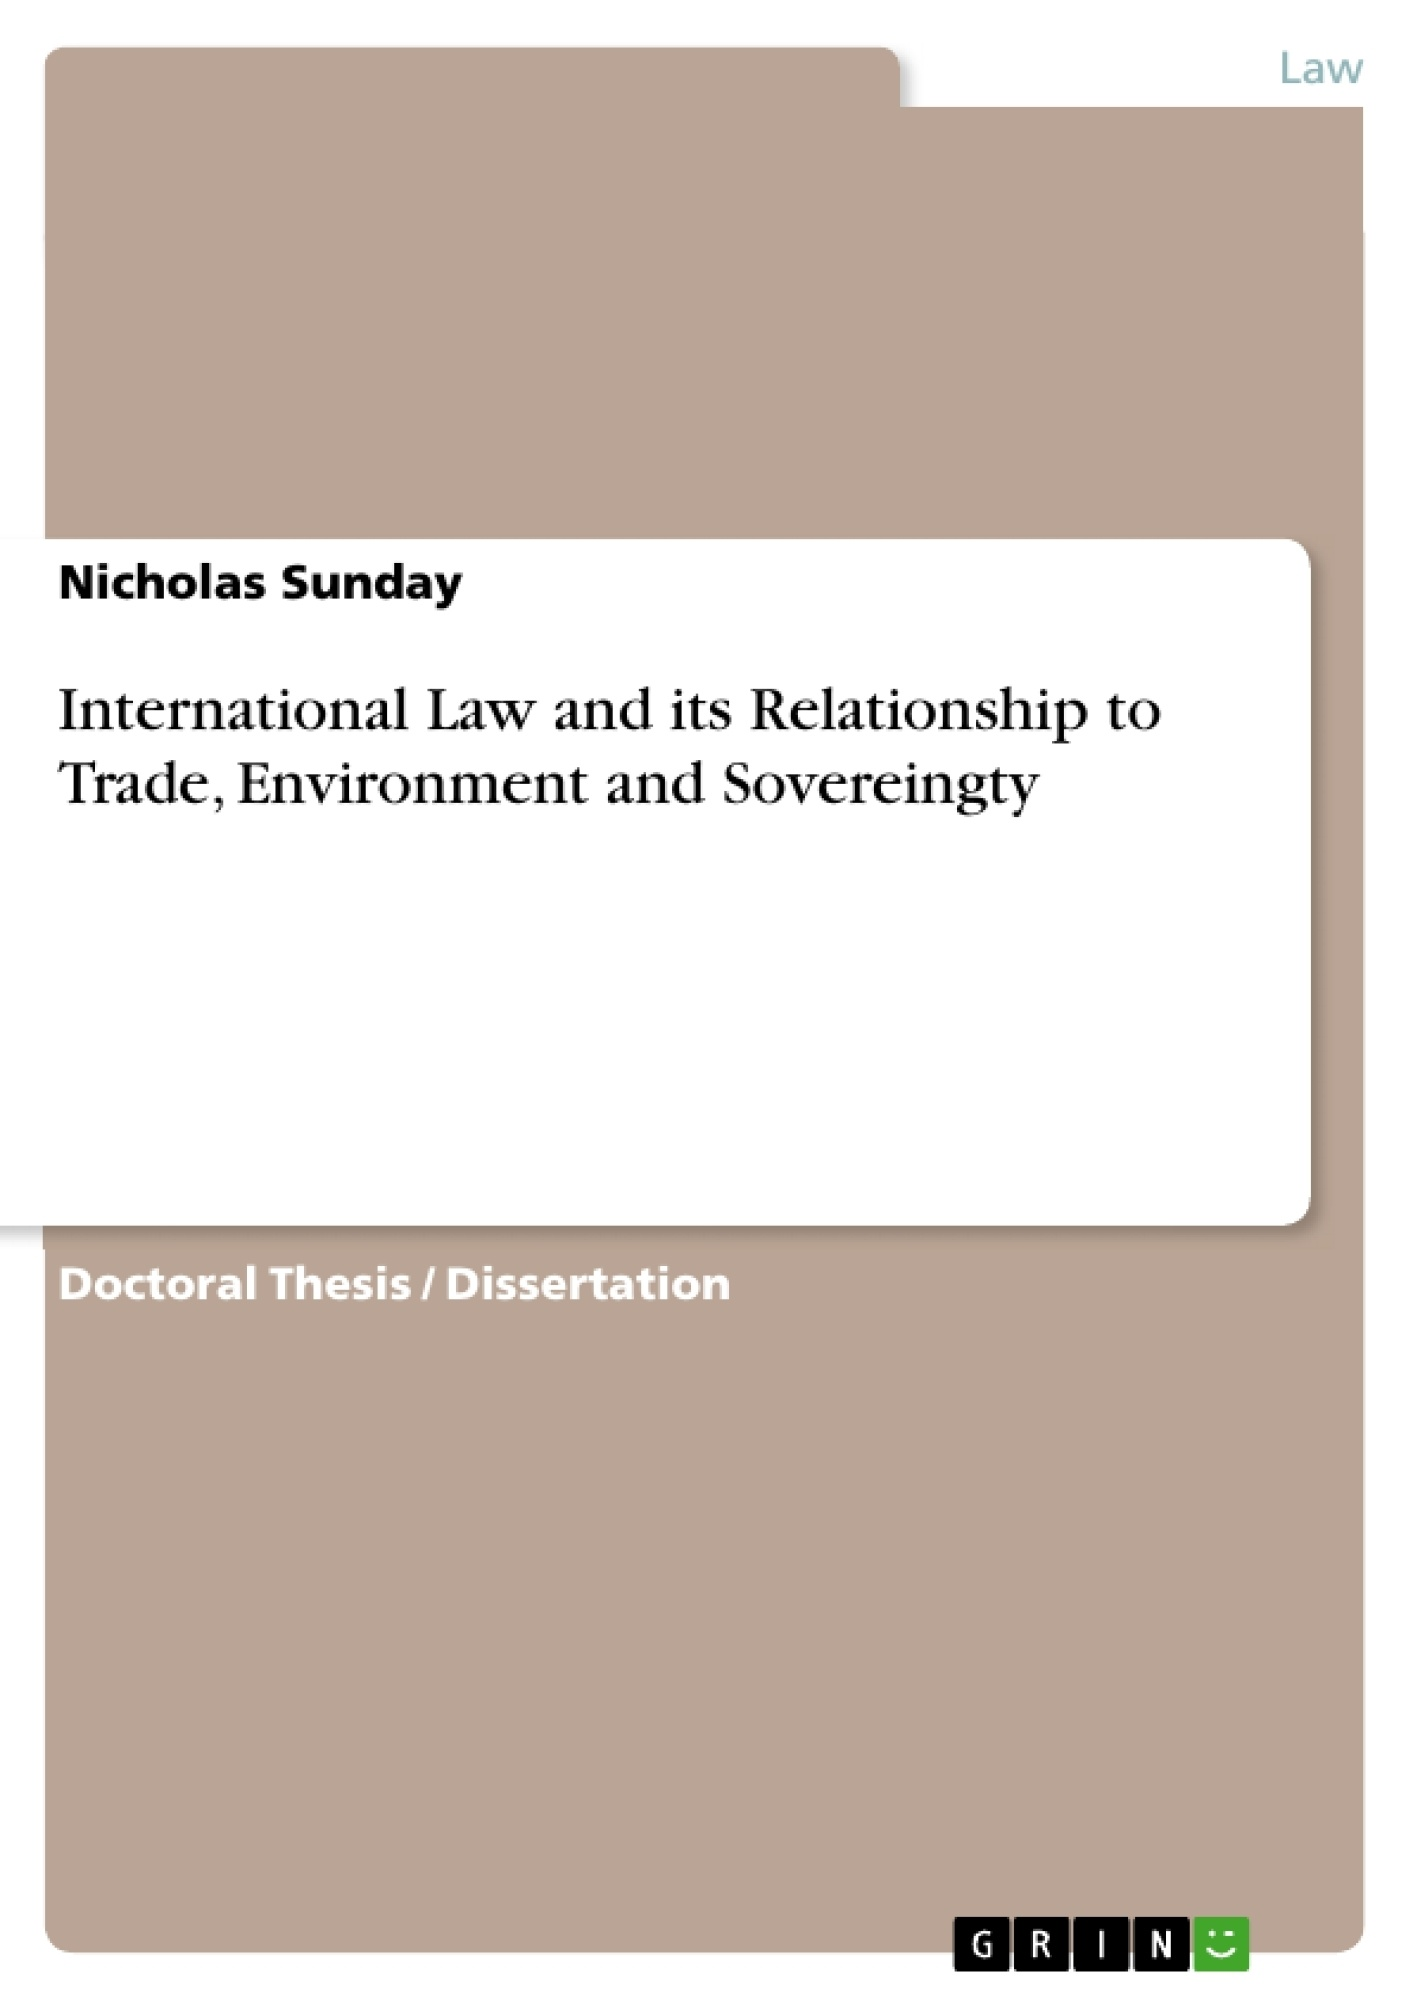 Title: International Law and its Relationship to Trade, Environment and Sovereingty